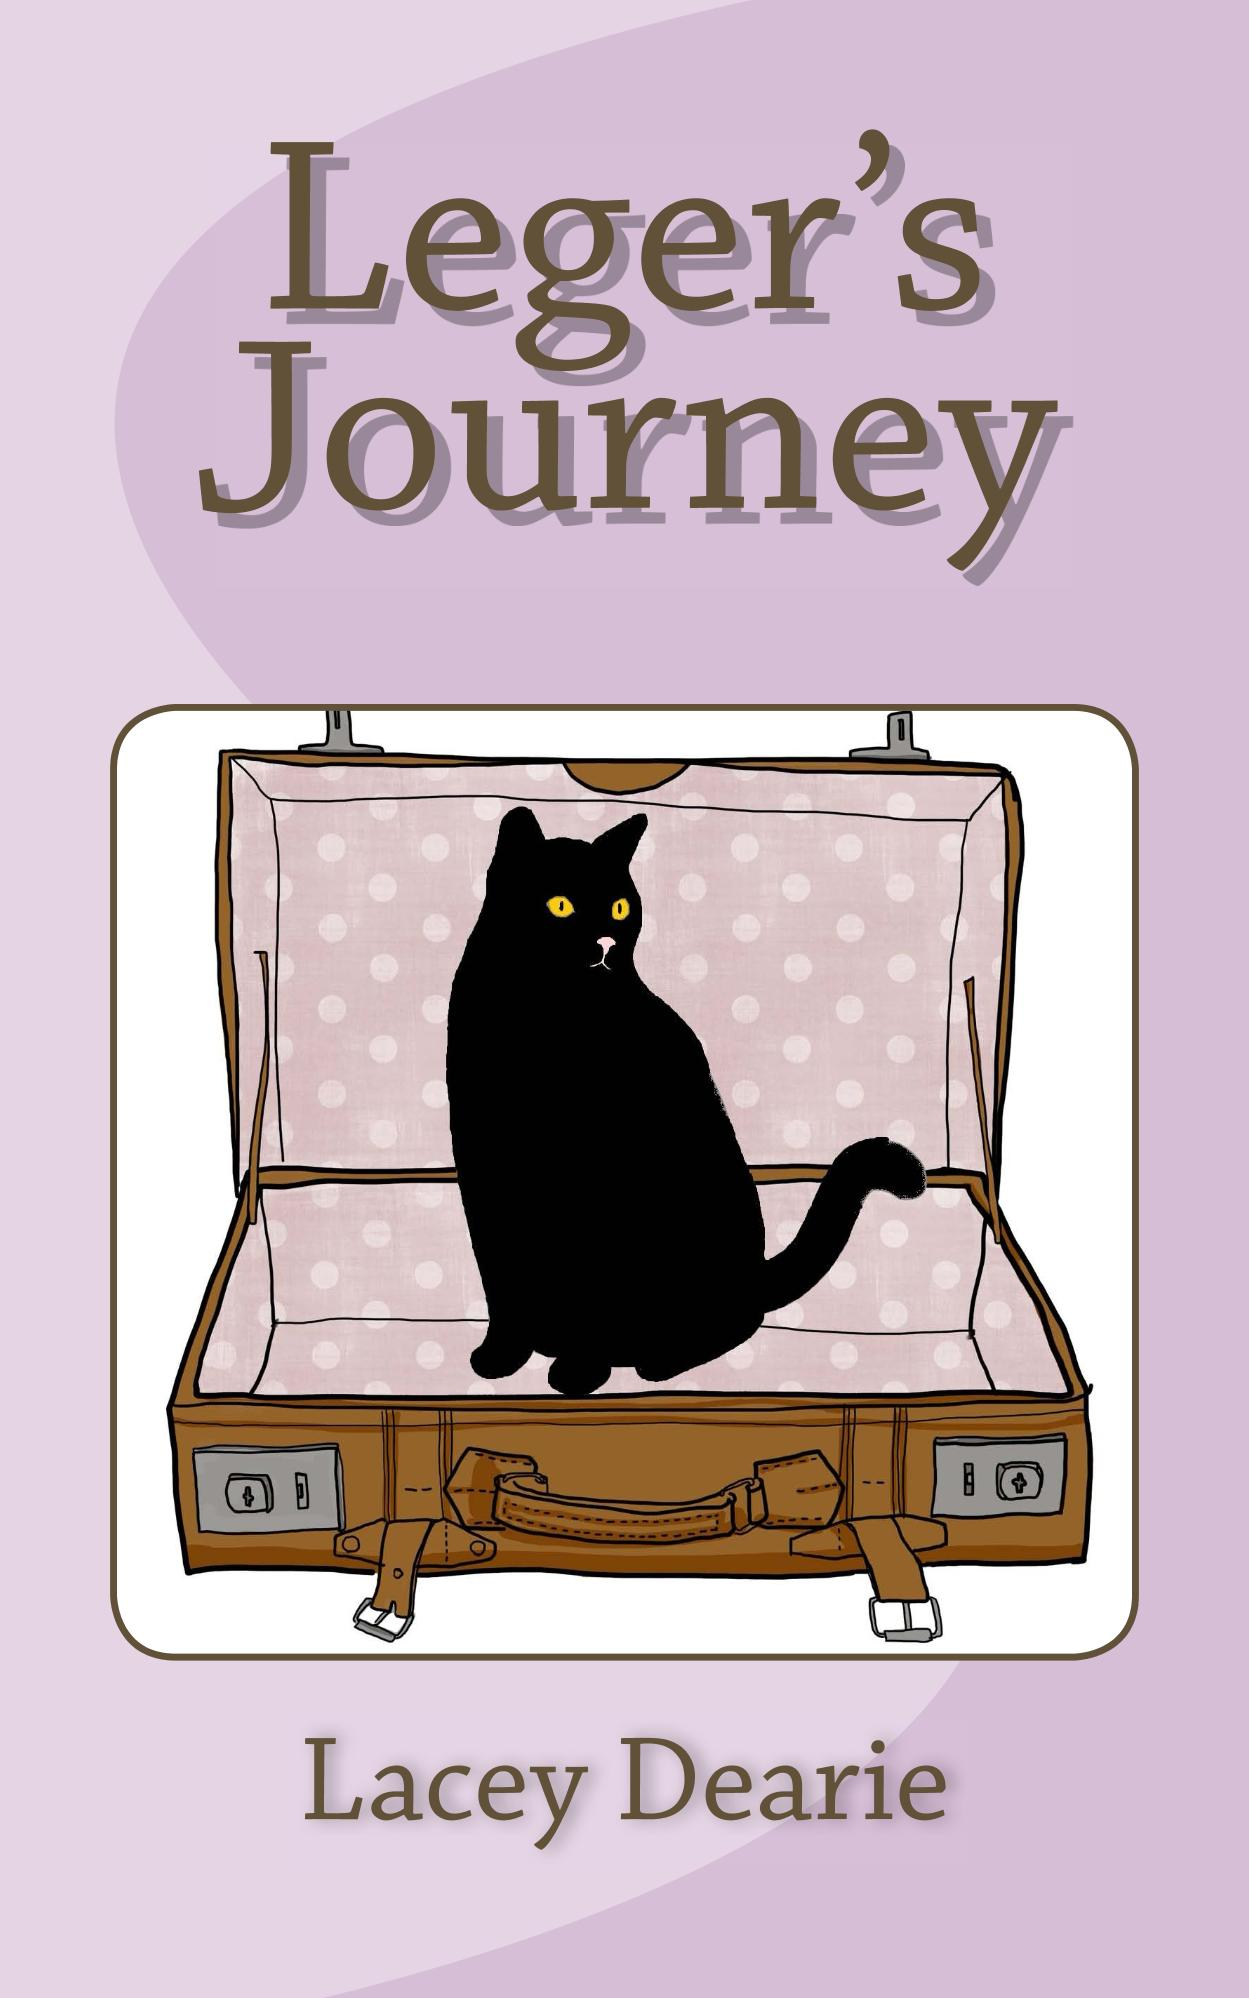 lacey dearie leger's journey cat sleuth